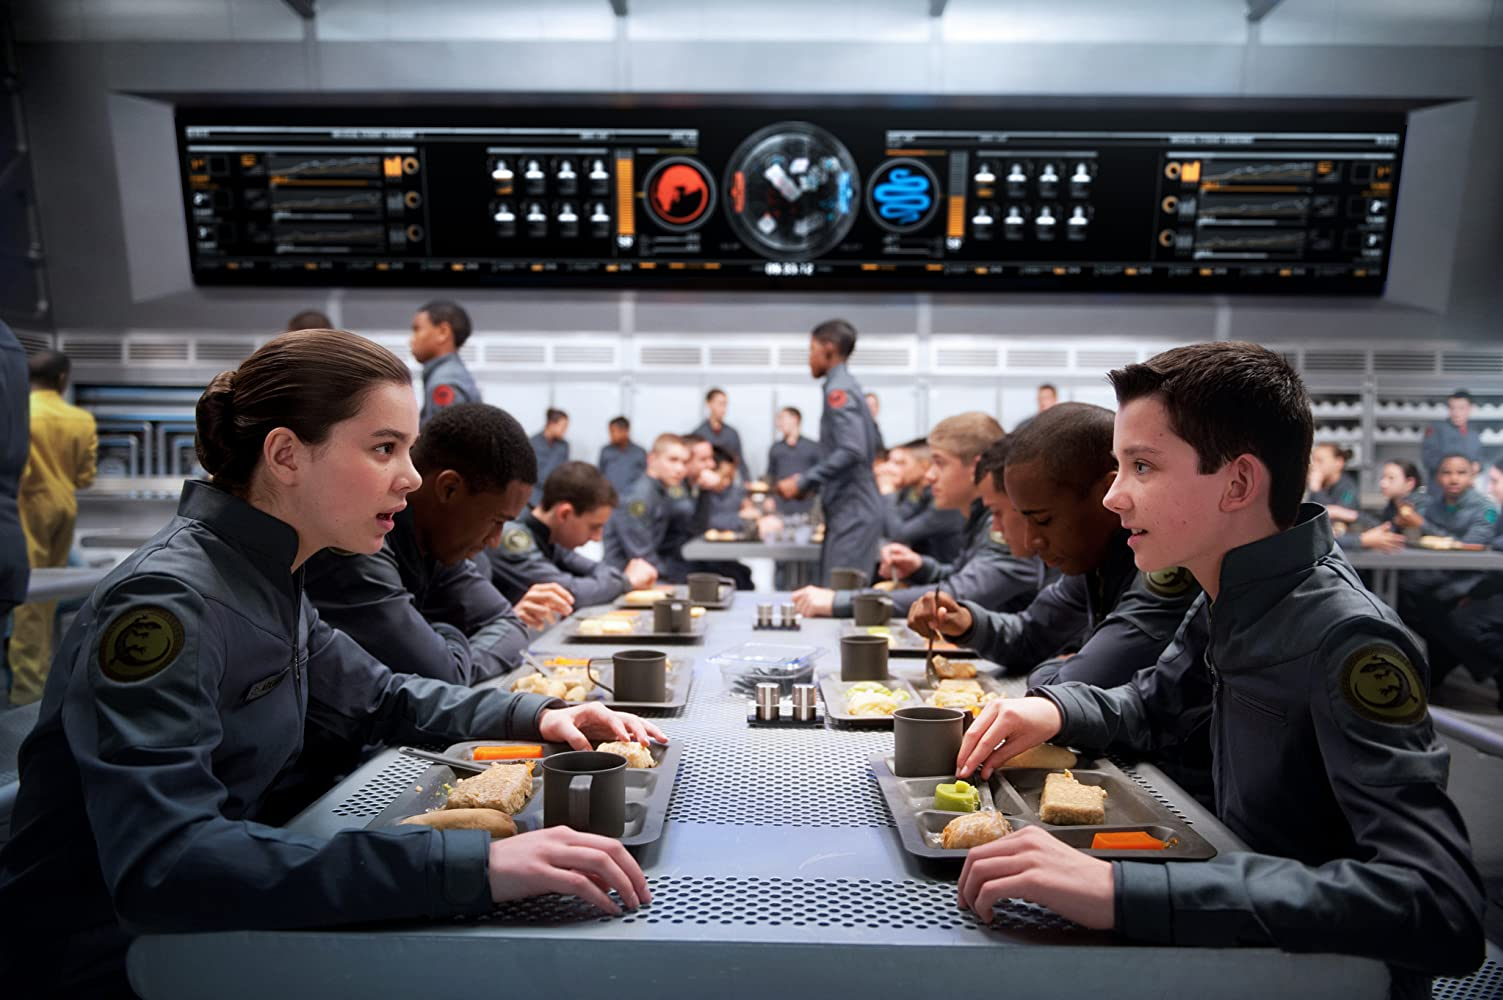 Ender and other members of his ship's junior IT staff. (From IMDB)